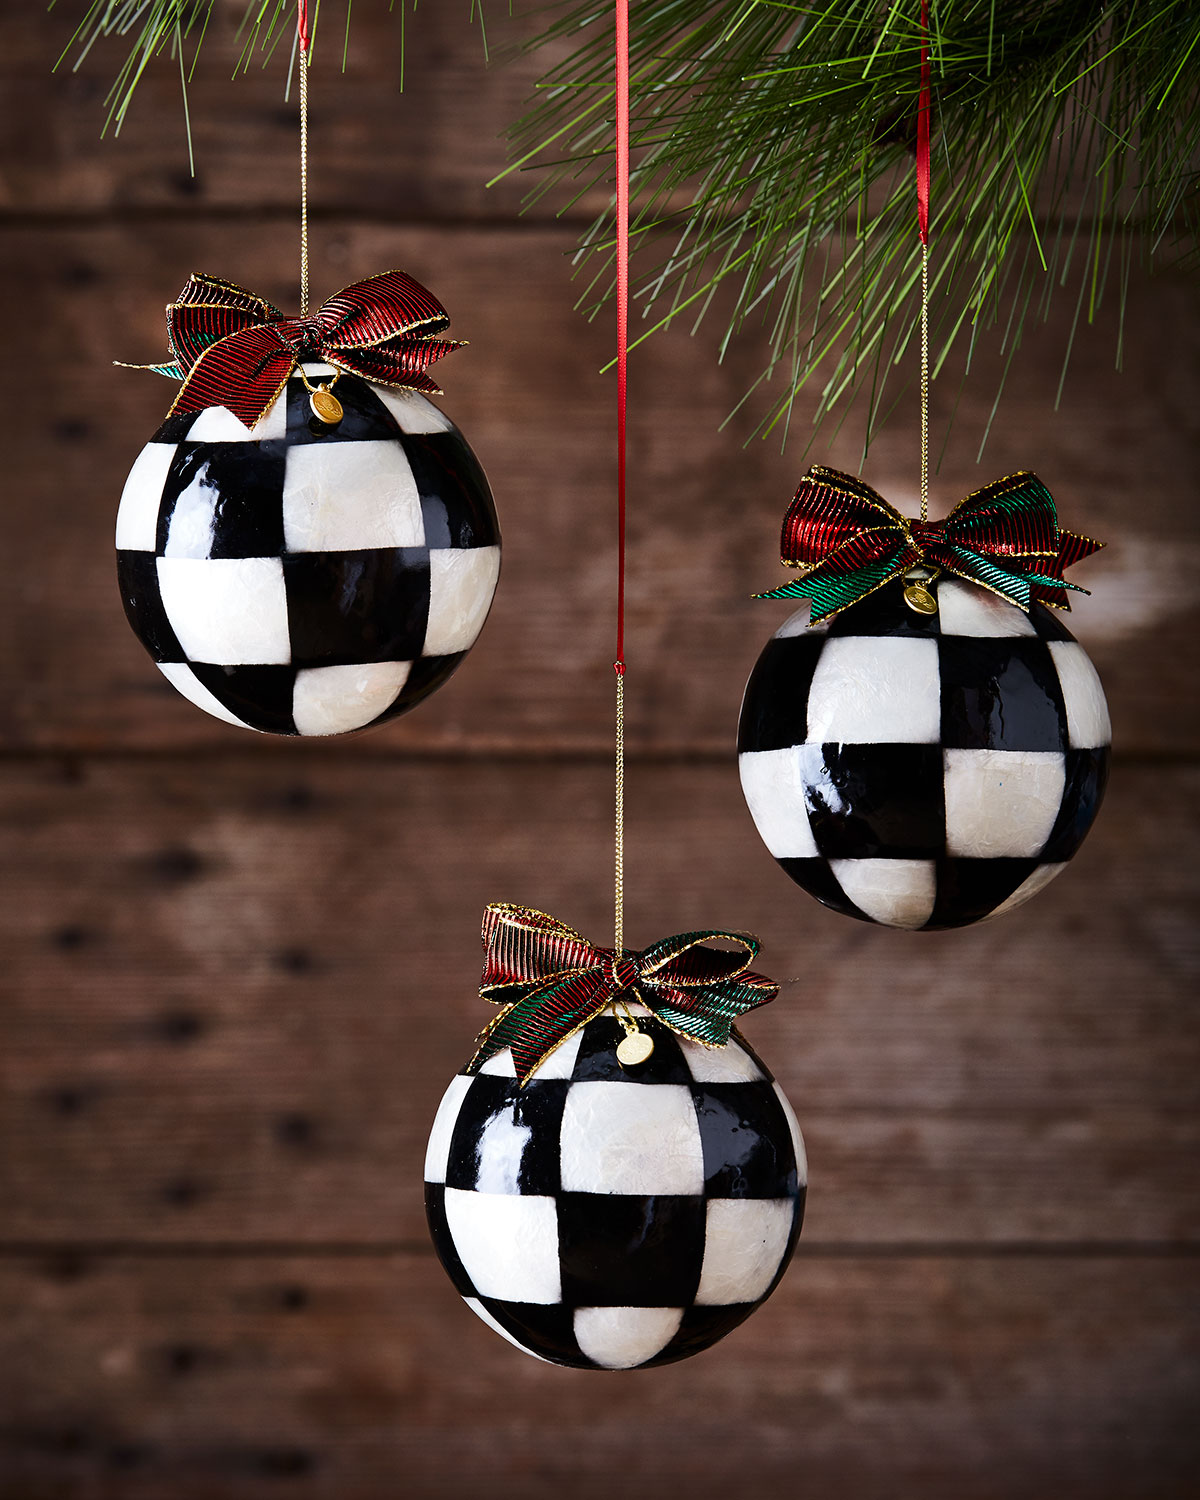 jester fancy large christmas ball ornaments set of 3 - Large Christmas Ball Ornaments